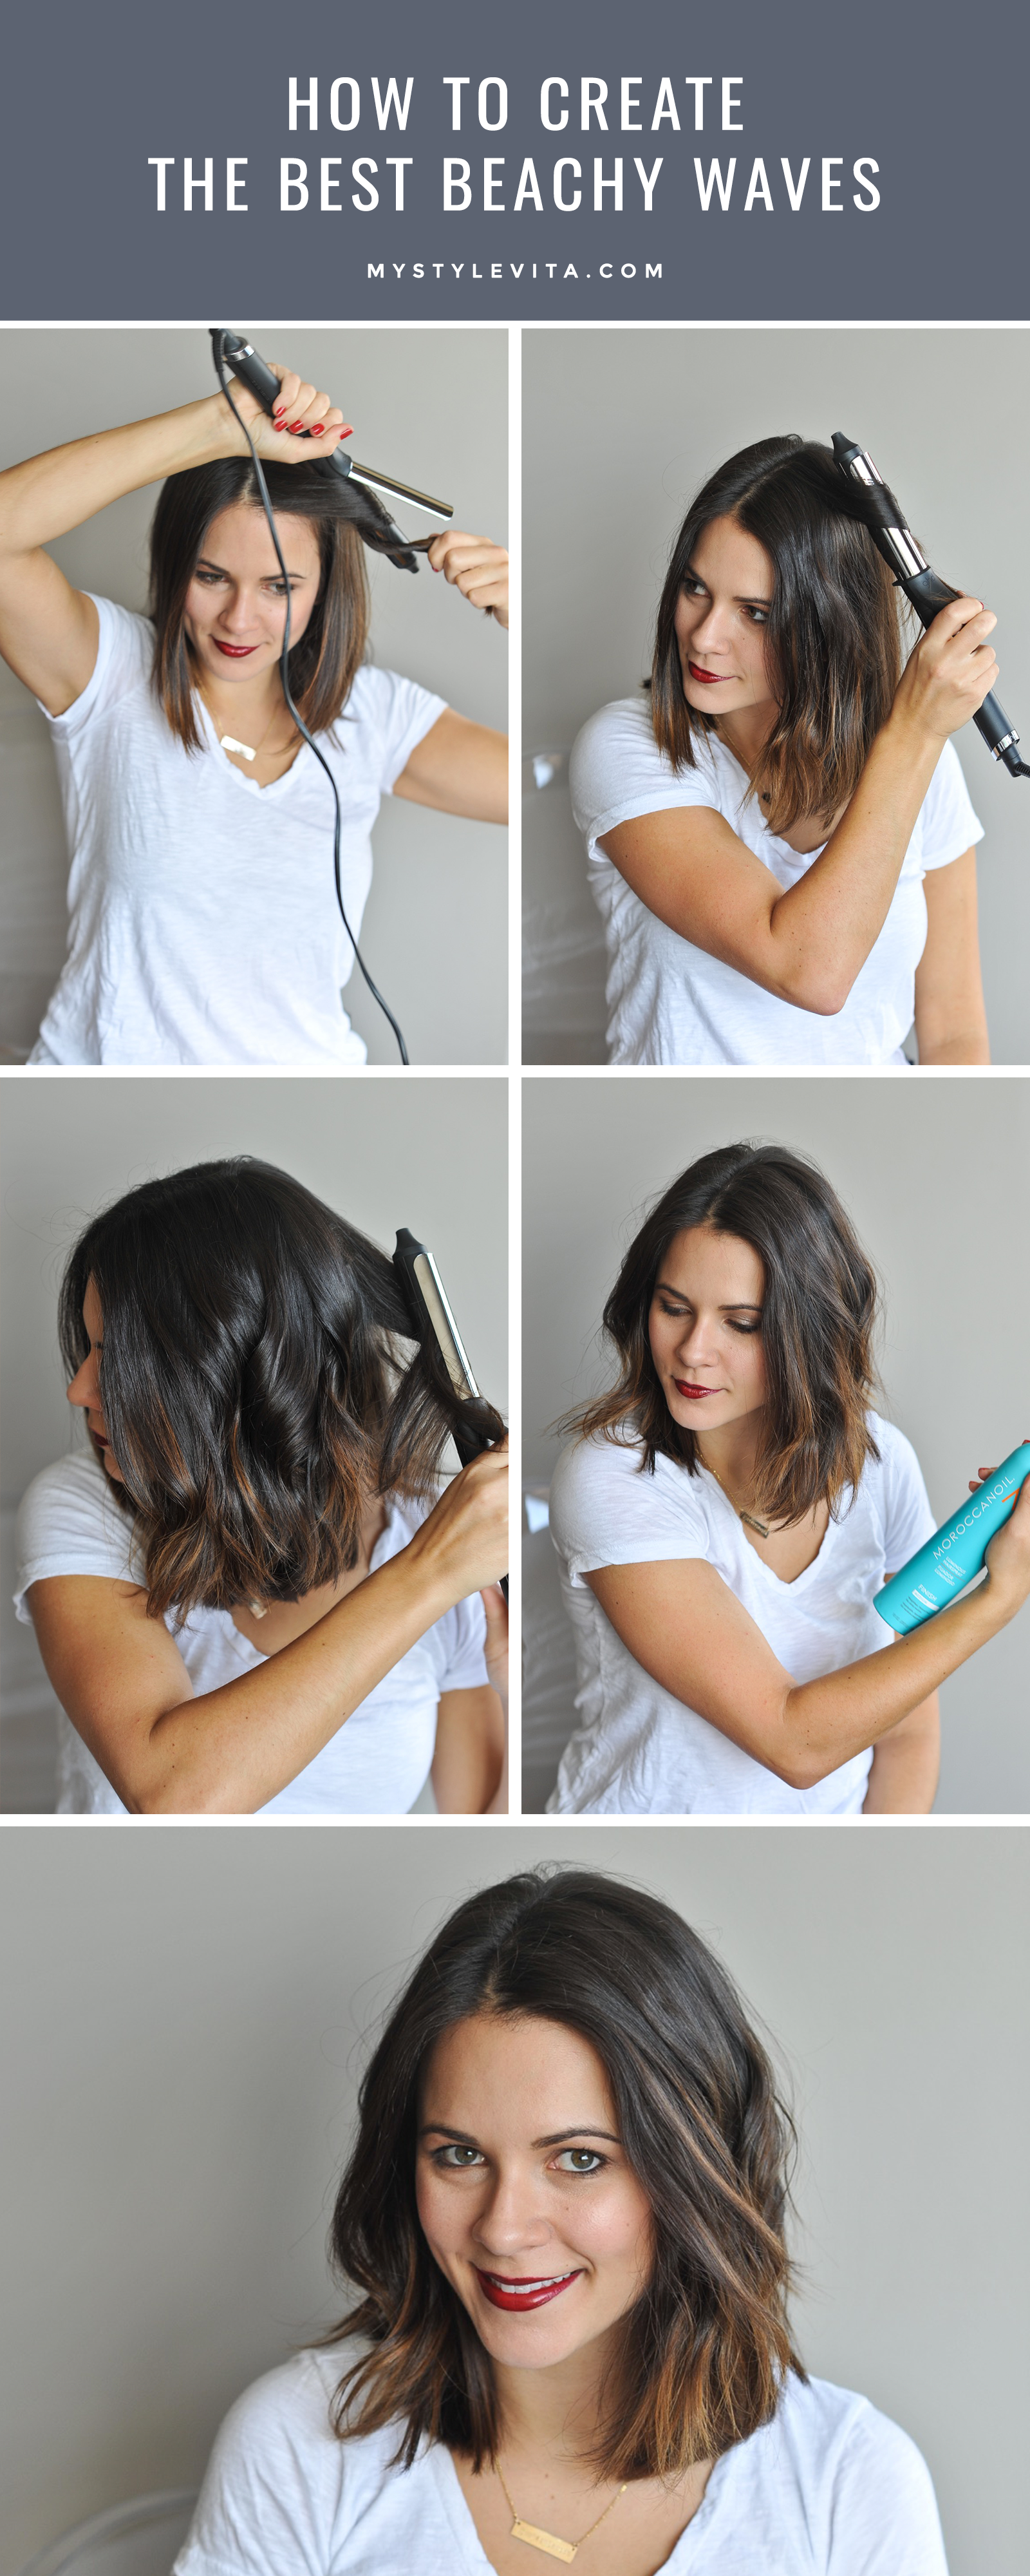 how to create the perfect beachy waves, hair tutorial - my